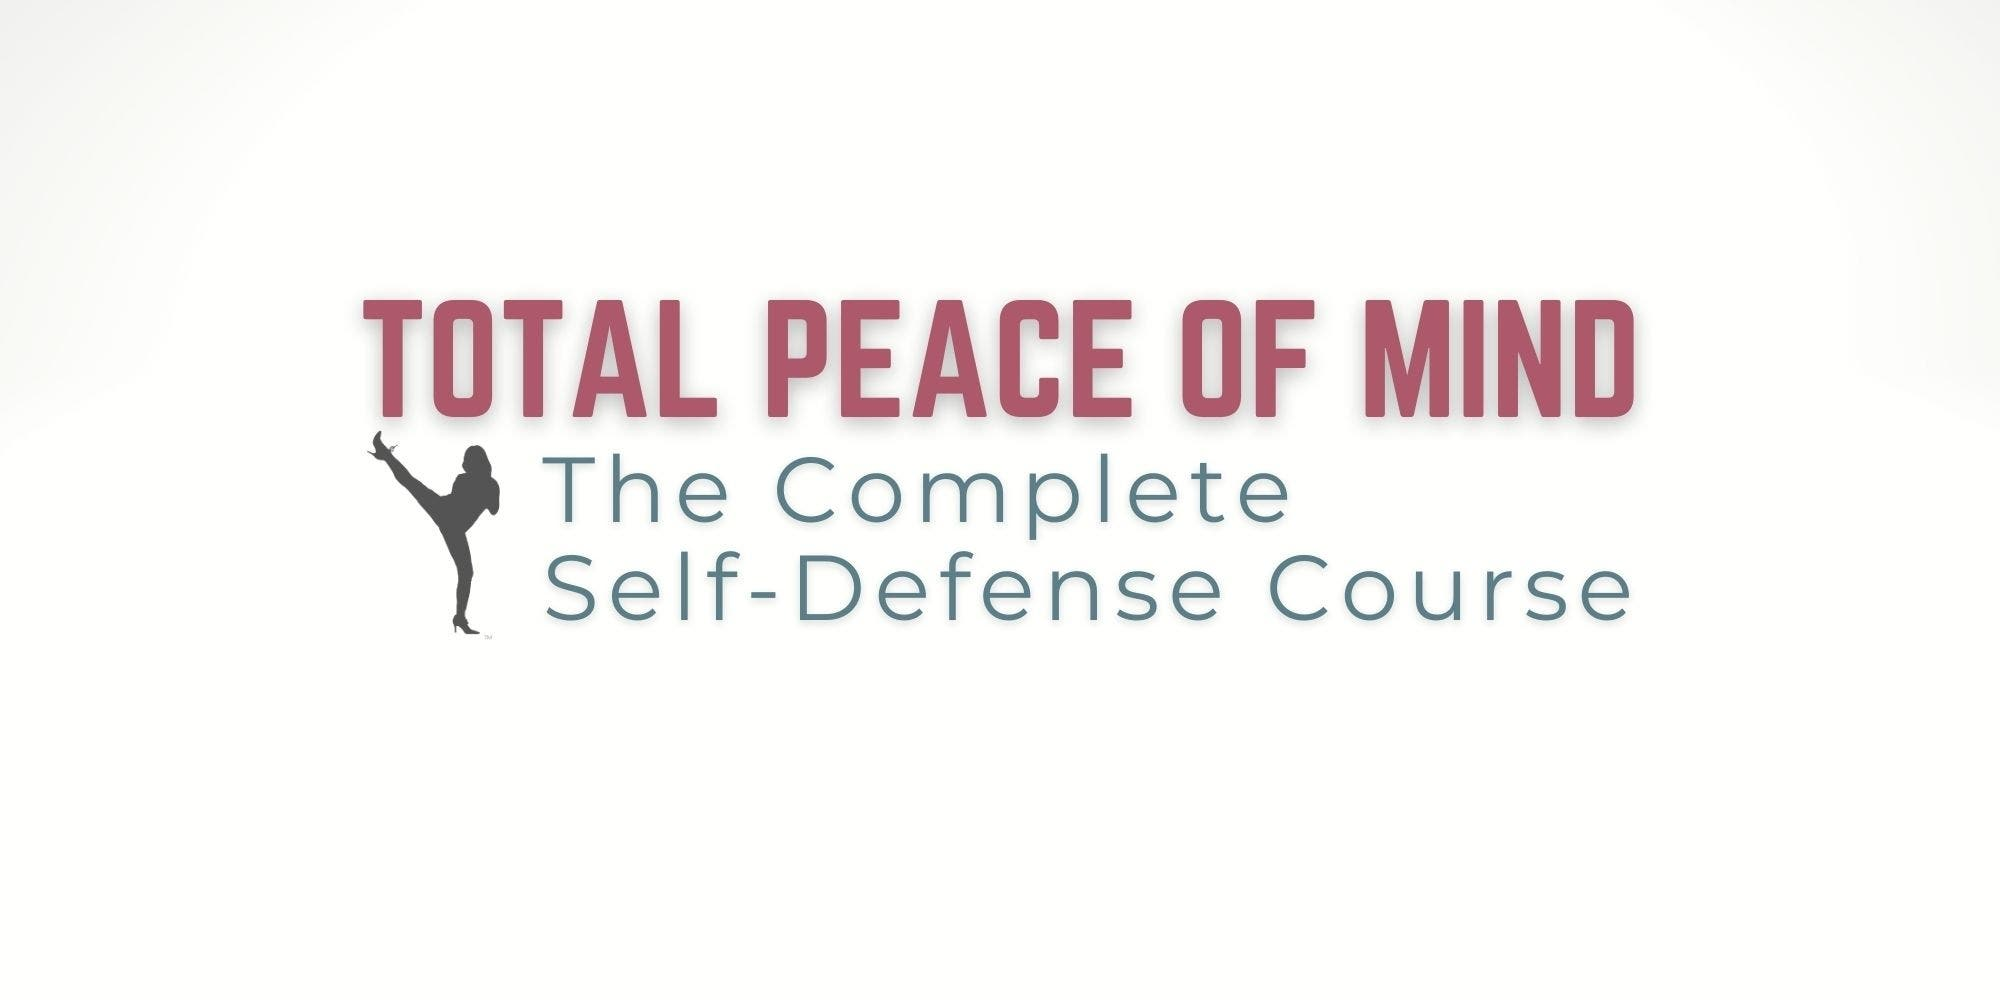 Total Peace of Mind - The Complete Self-Defense Package